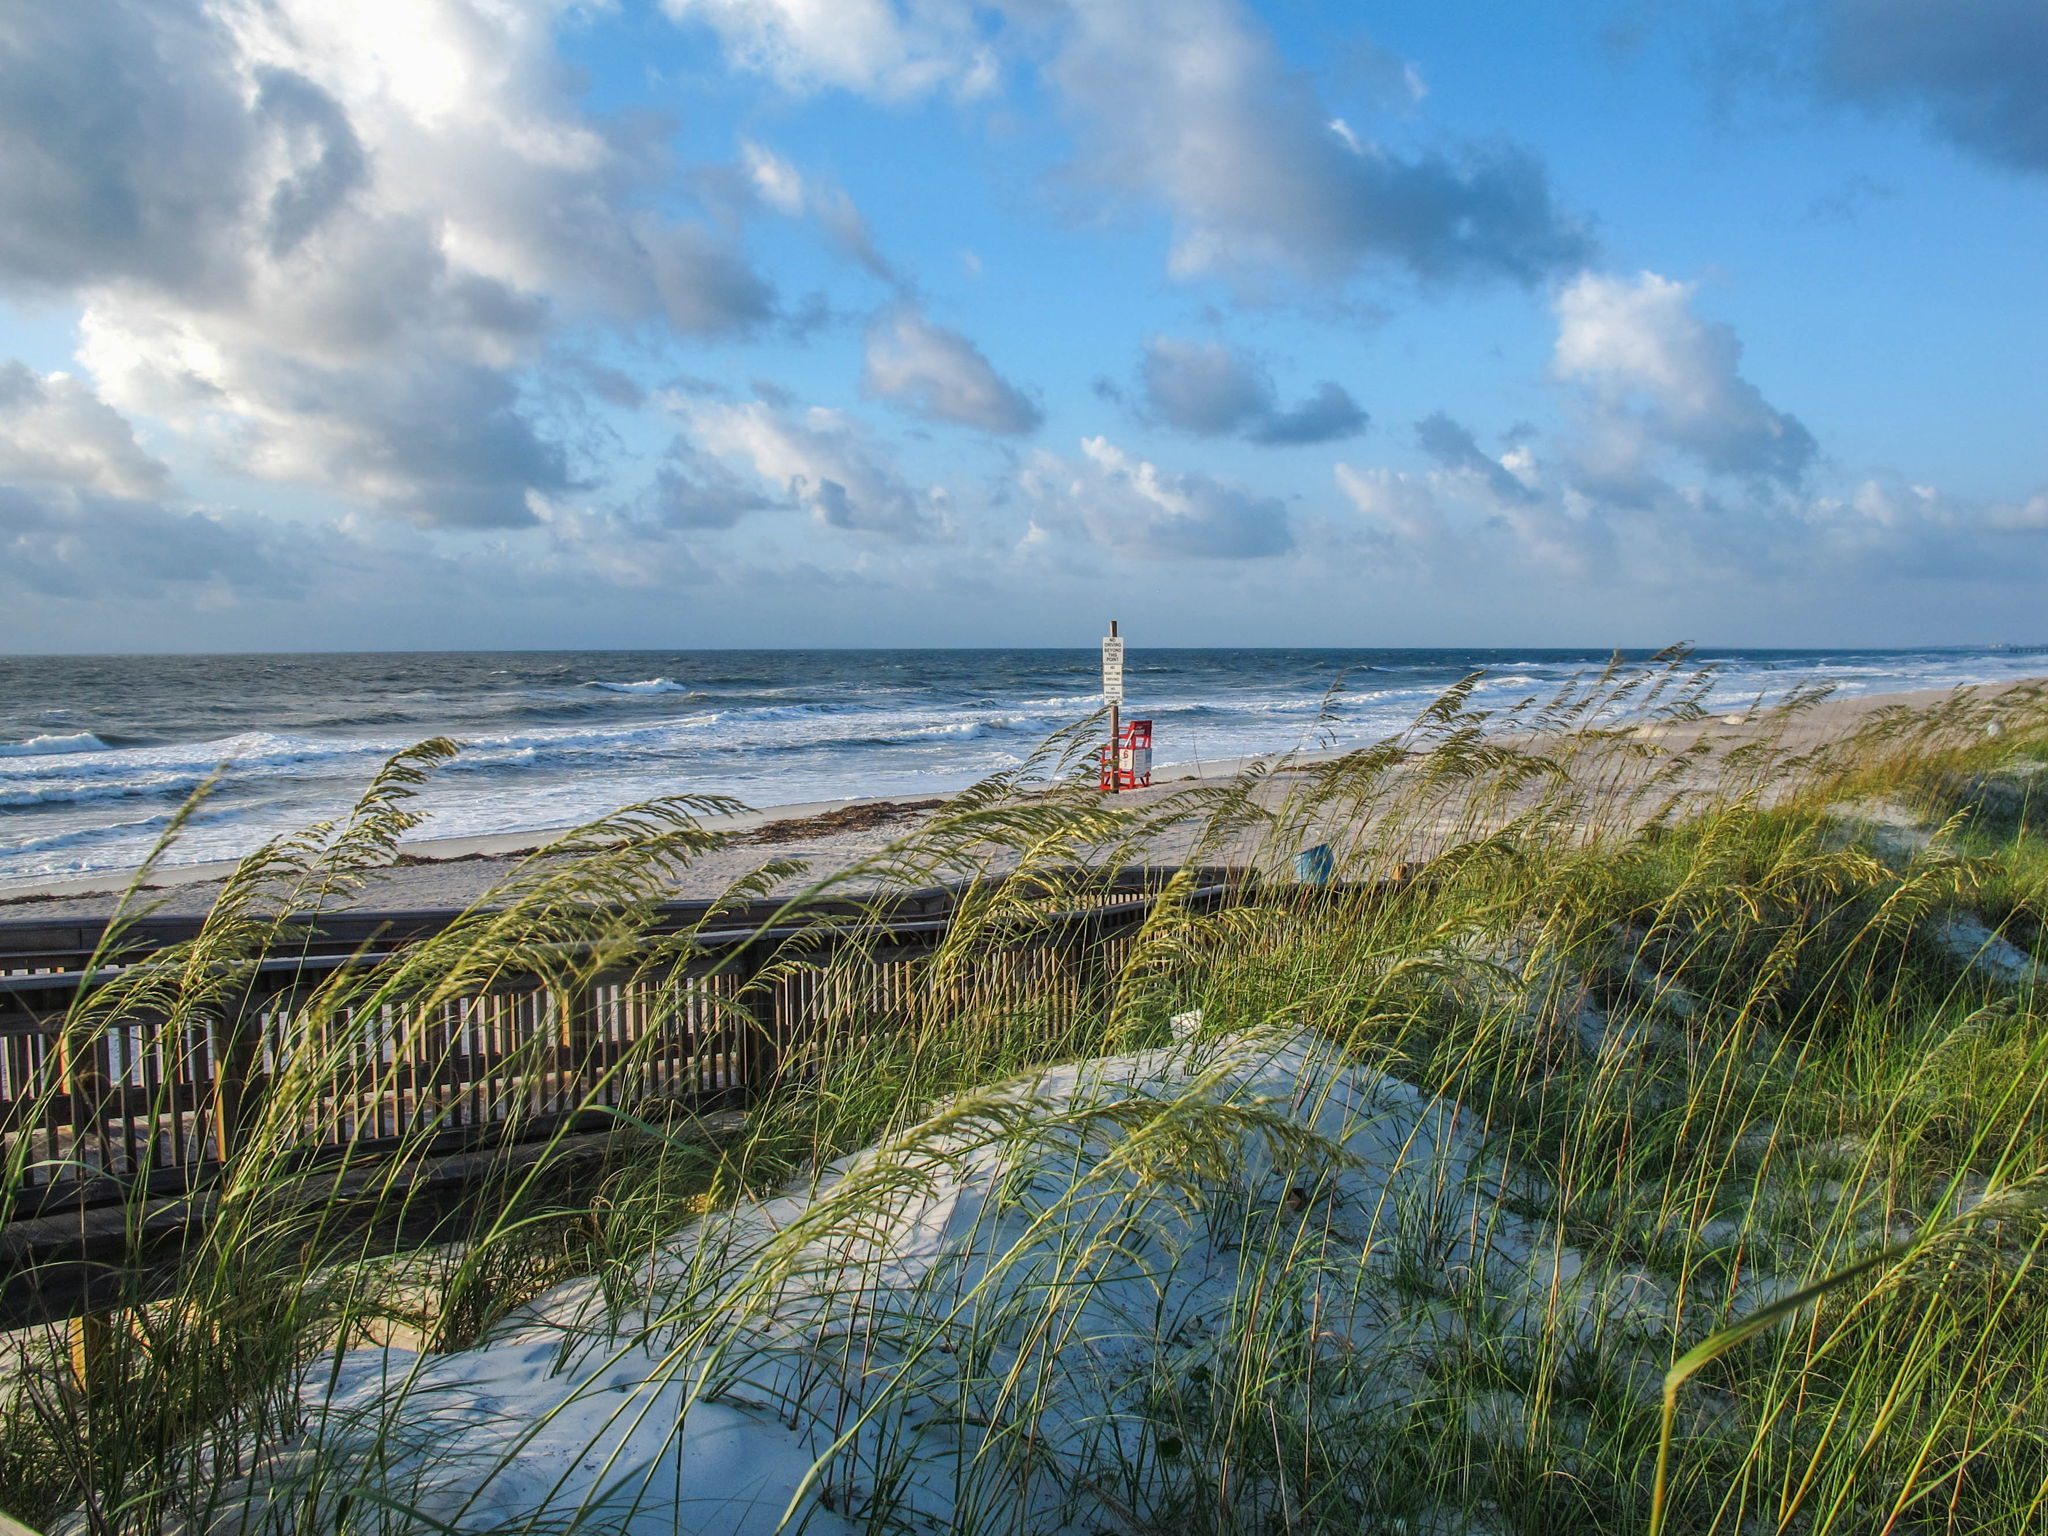 Amelia Island's beauty has won it multiple awards for one of the top beach destinations in the U.S.